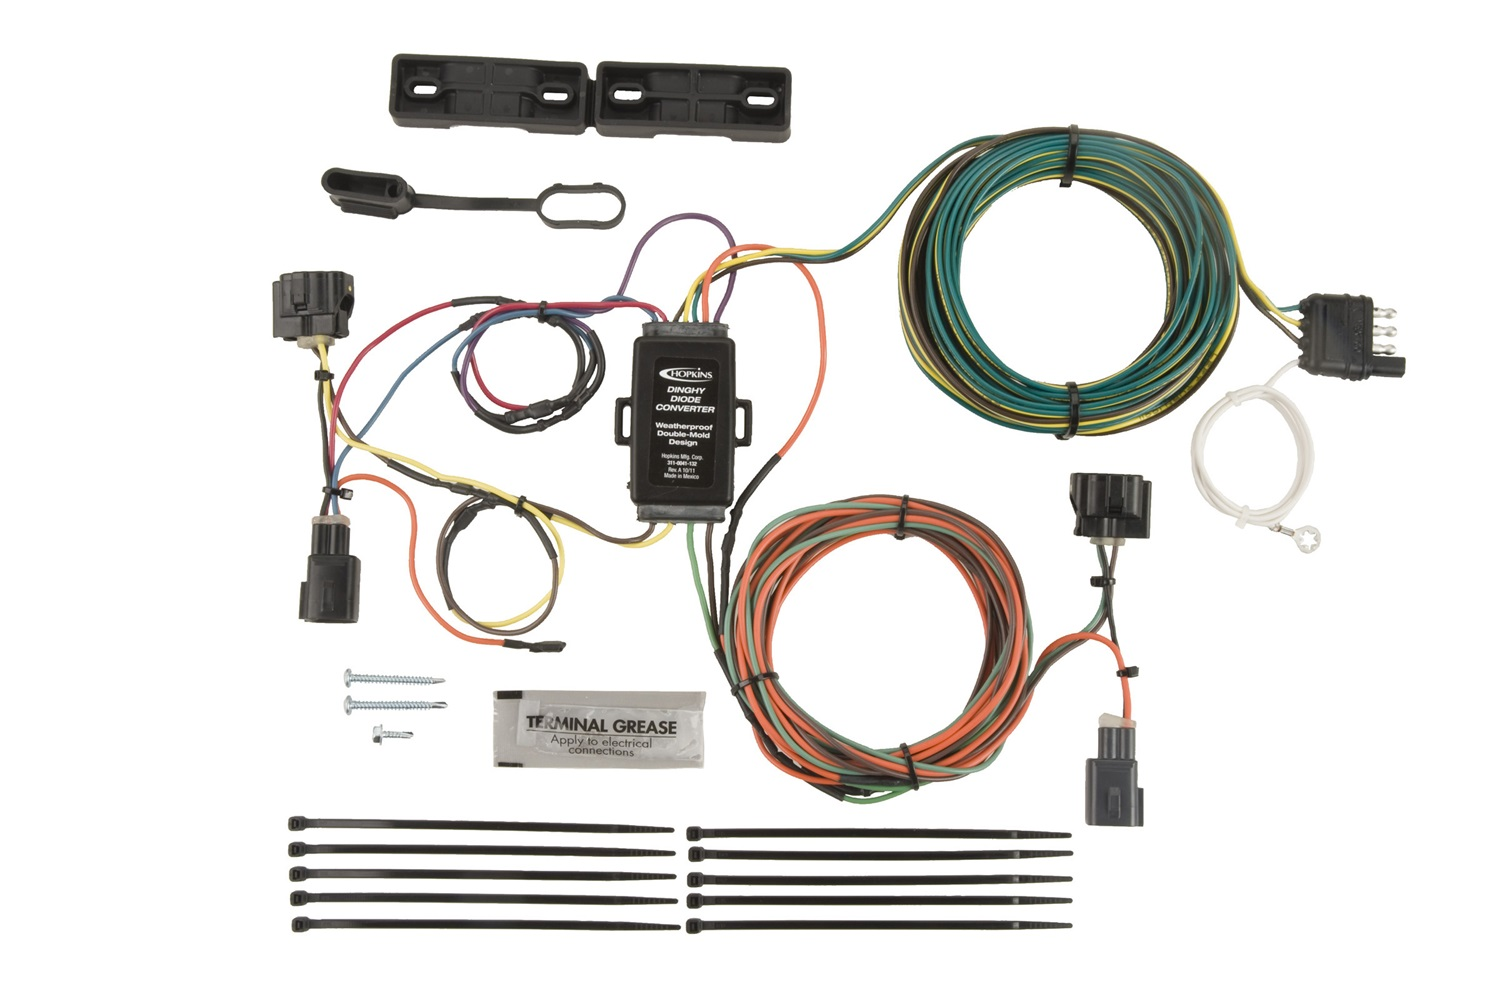 Hopkins Towing Solution 56202 Plug In Simple Vehicle To Trailer Wiring Specialties Review Harness